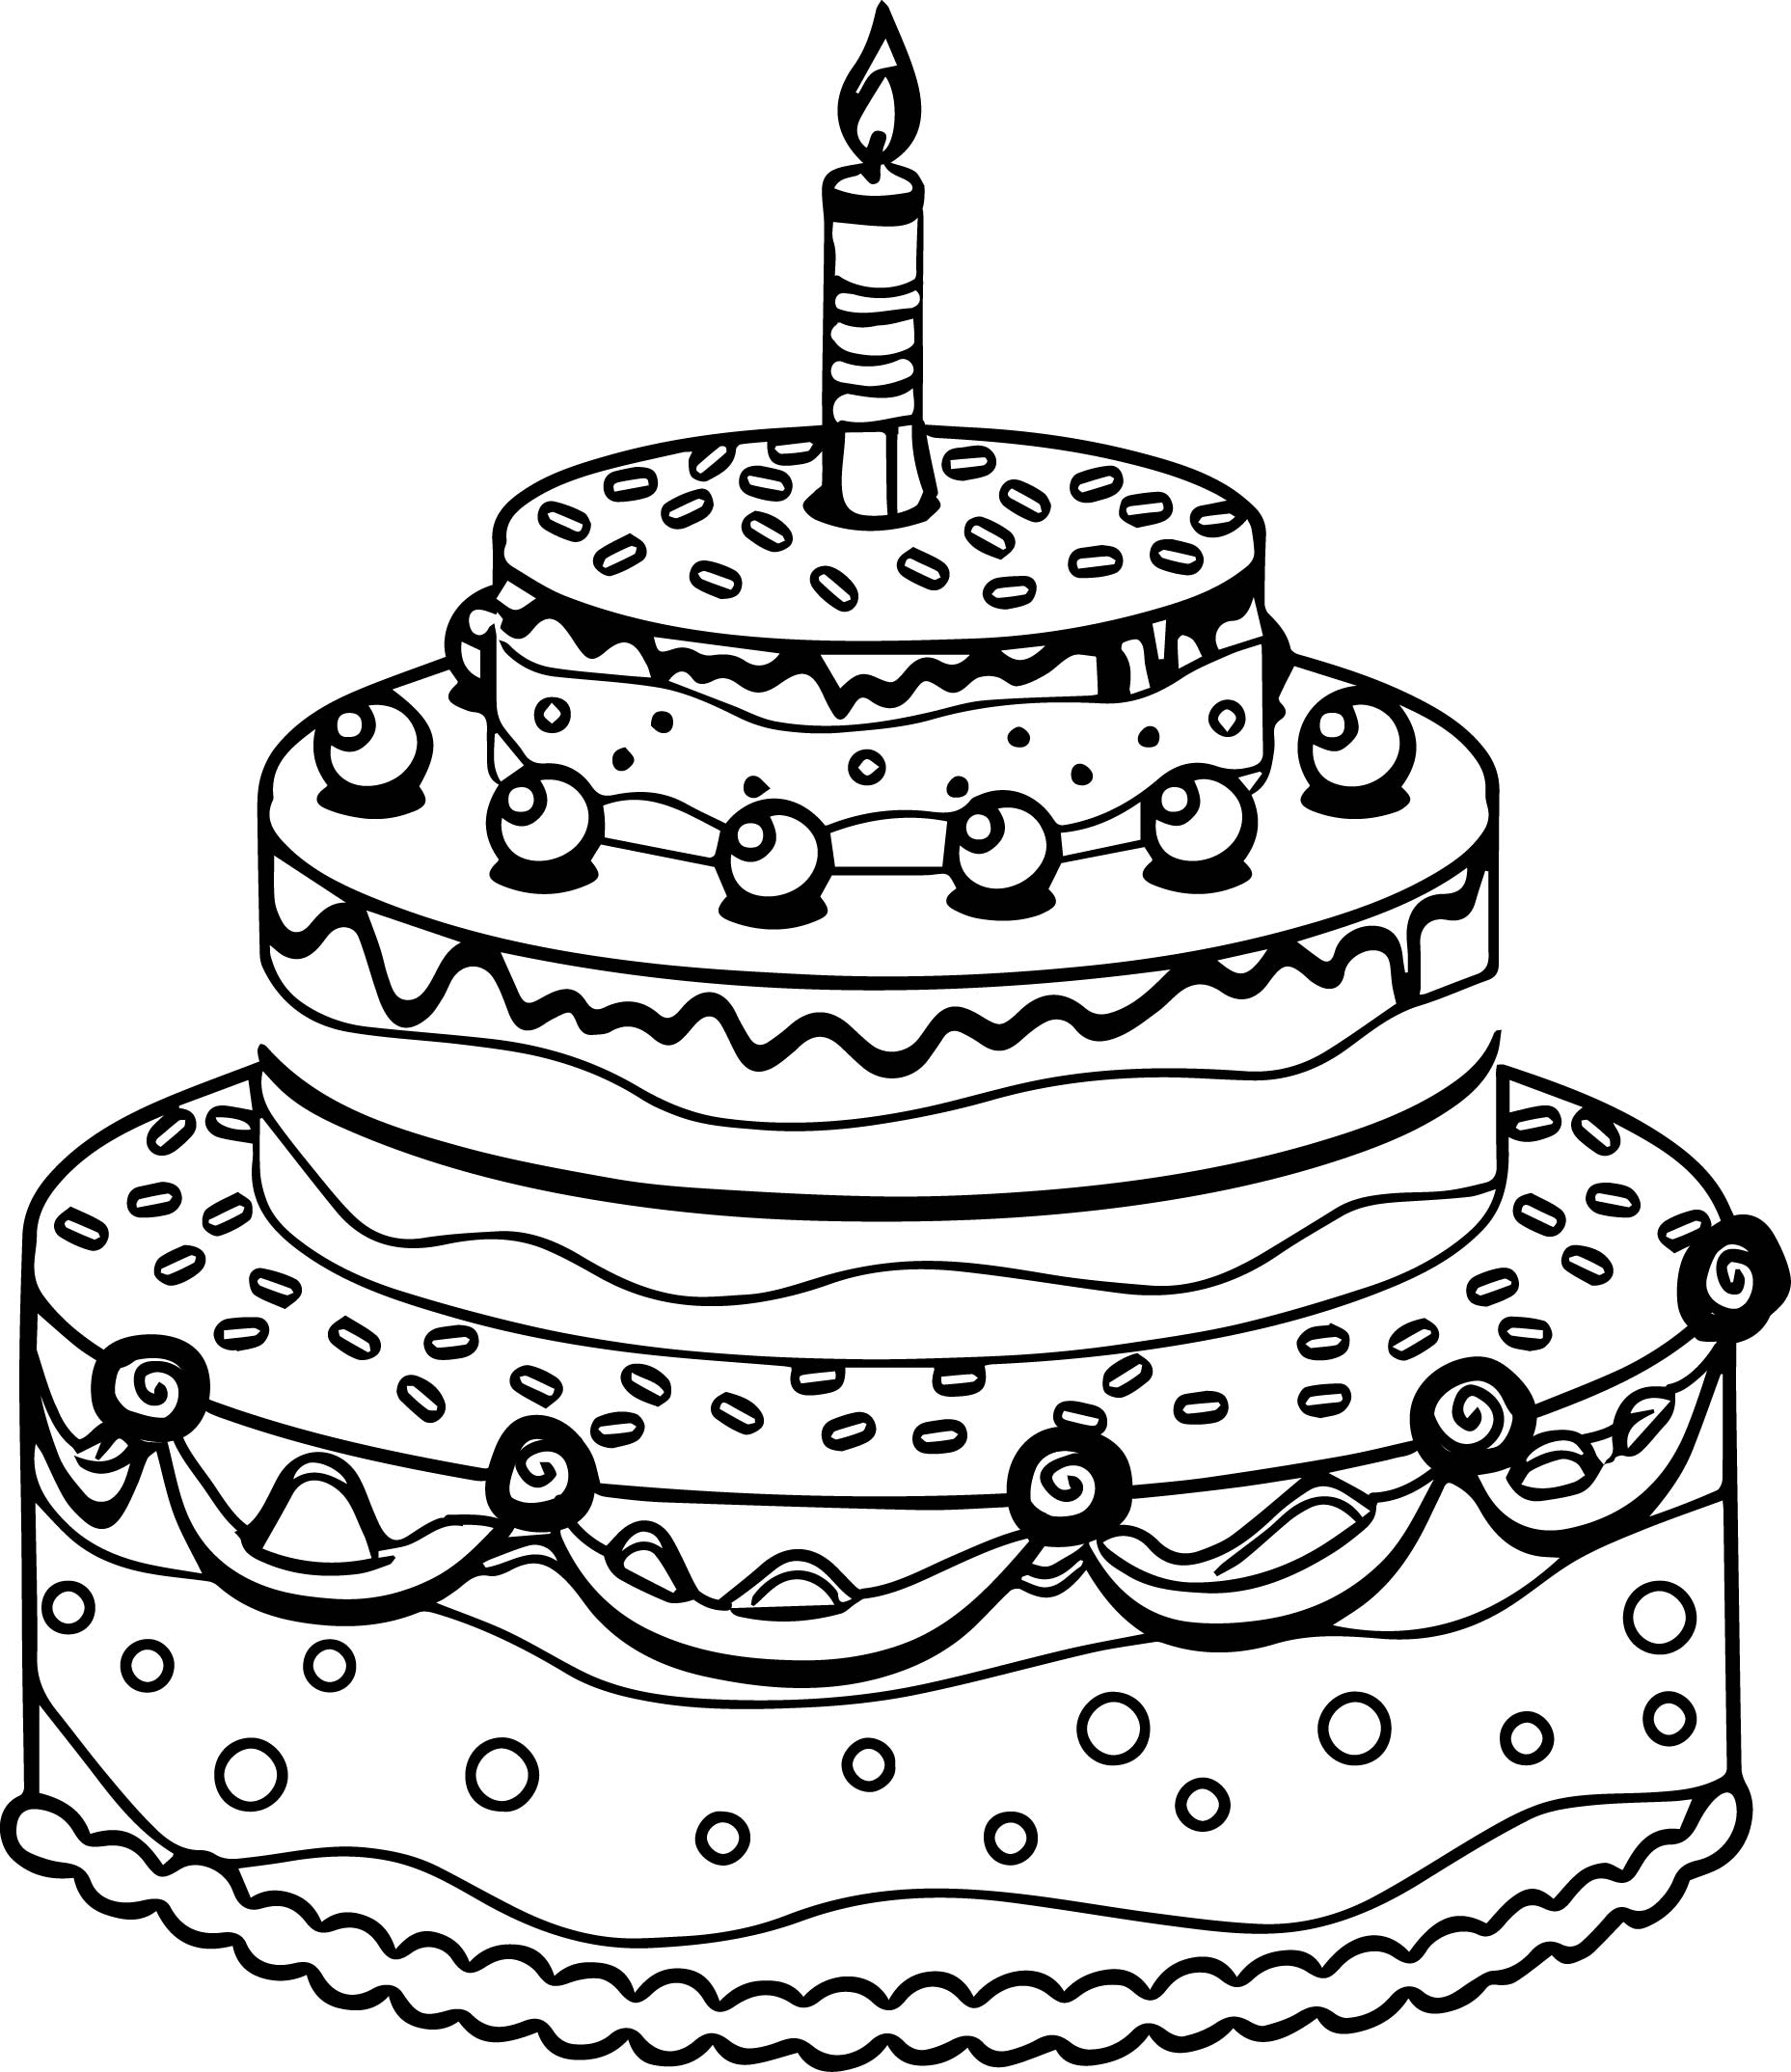 Coloring pages birthday cake - Cute Birthday Cake Coloring Page